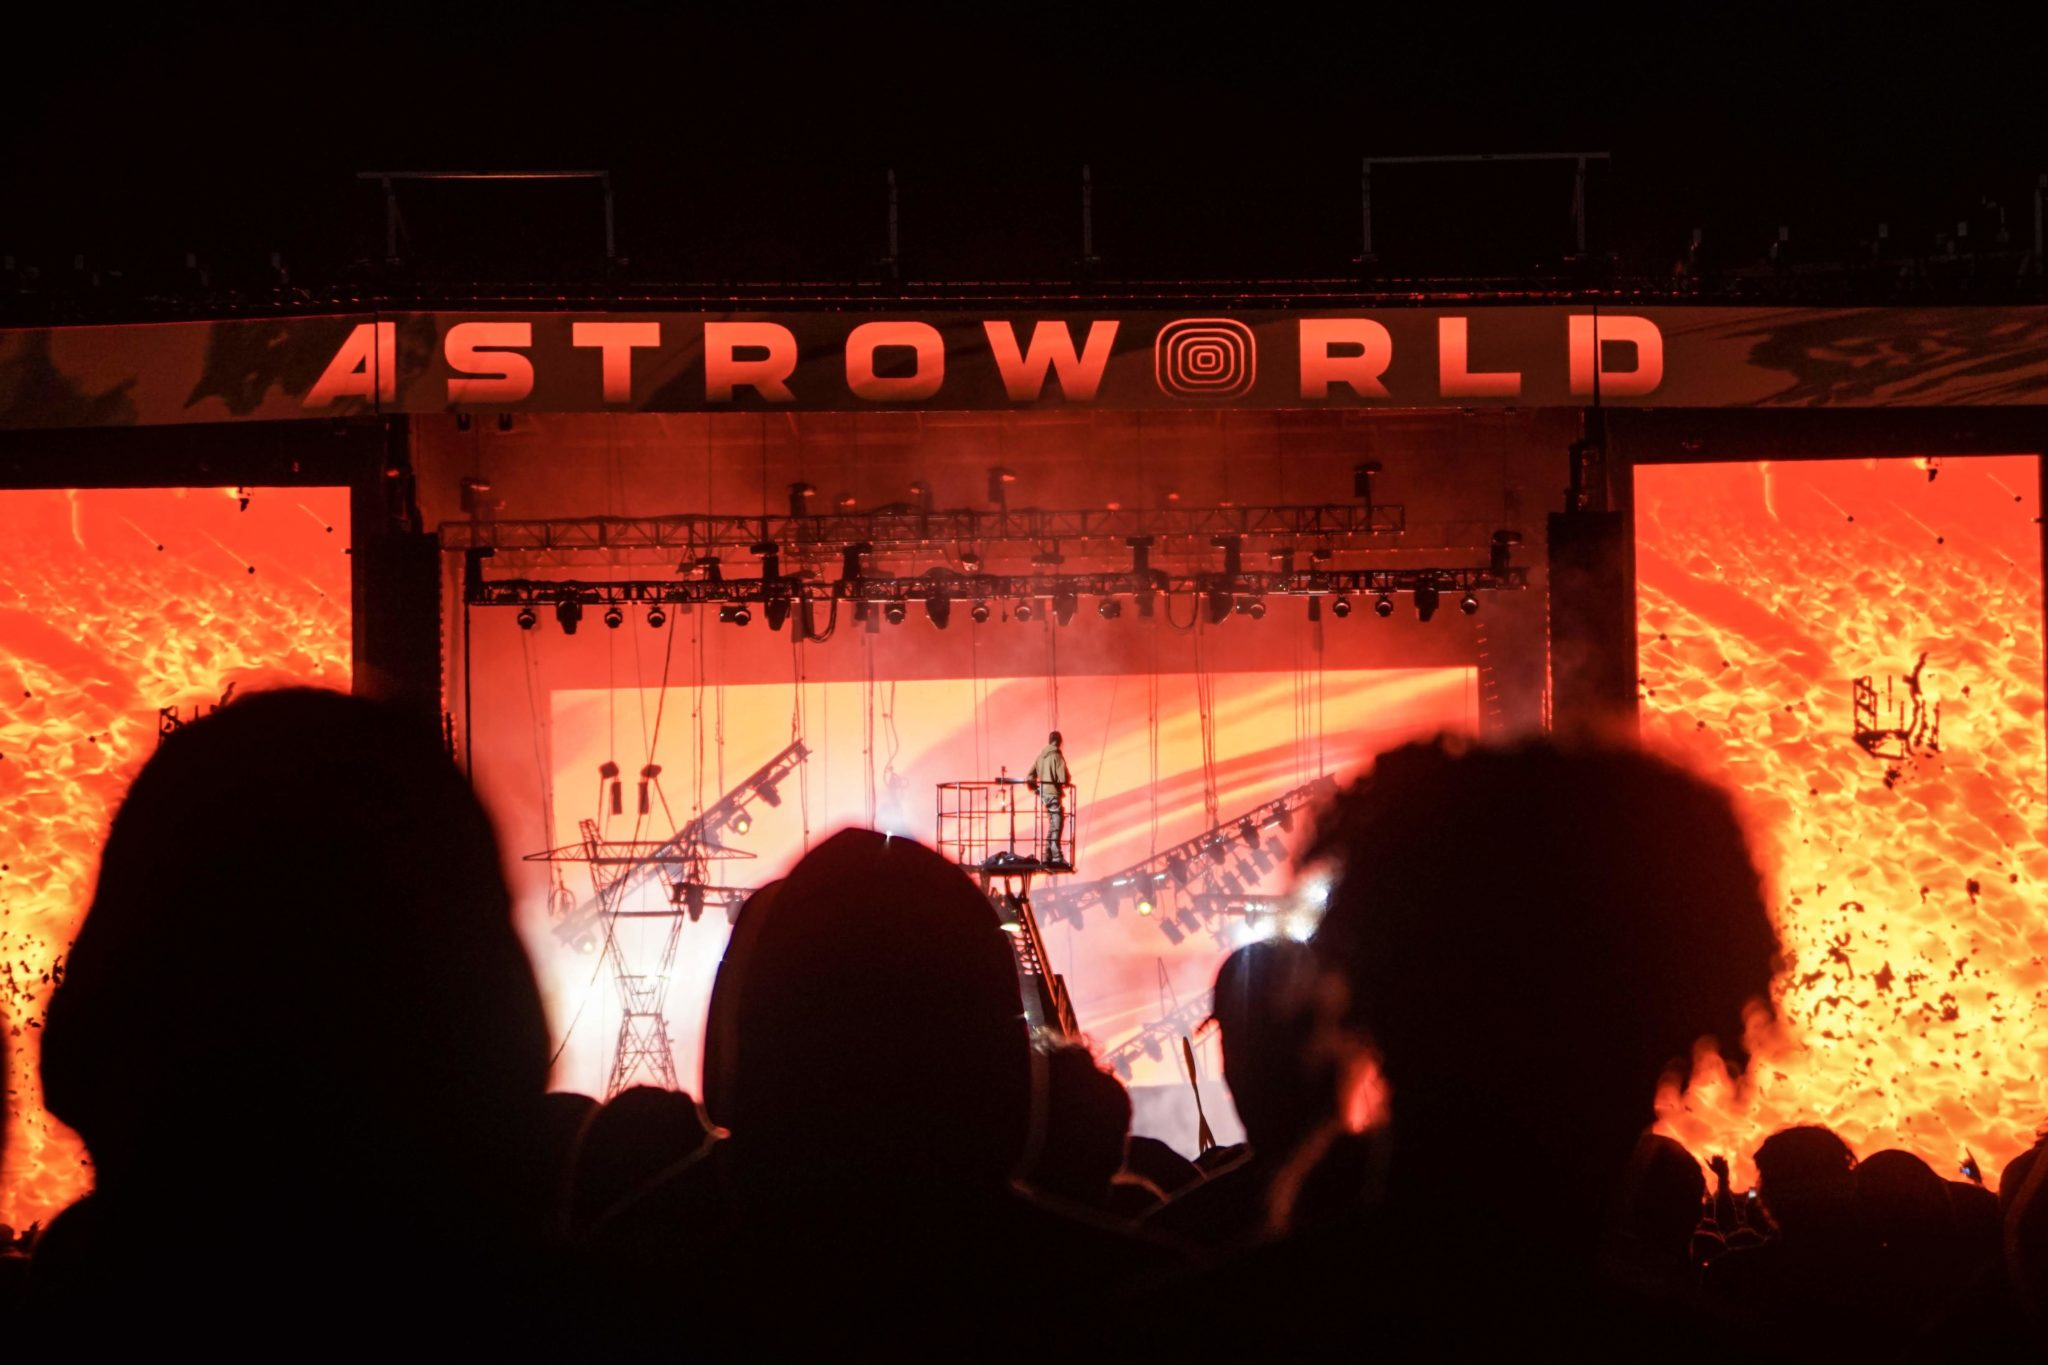 Astroworld Festival 2019: Ft. Playboi Carti, Marilyn Manson, Travis Scott, & More